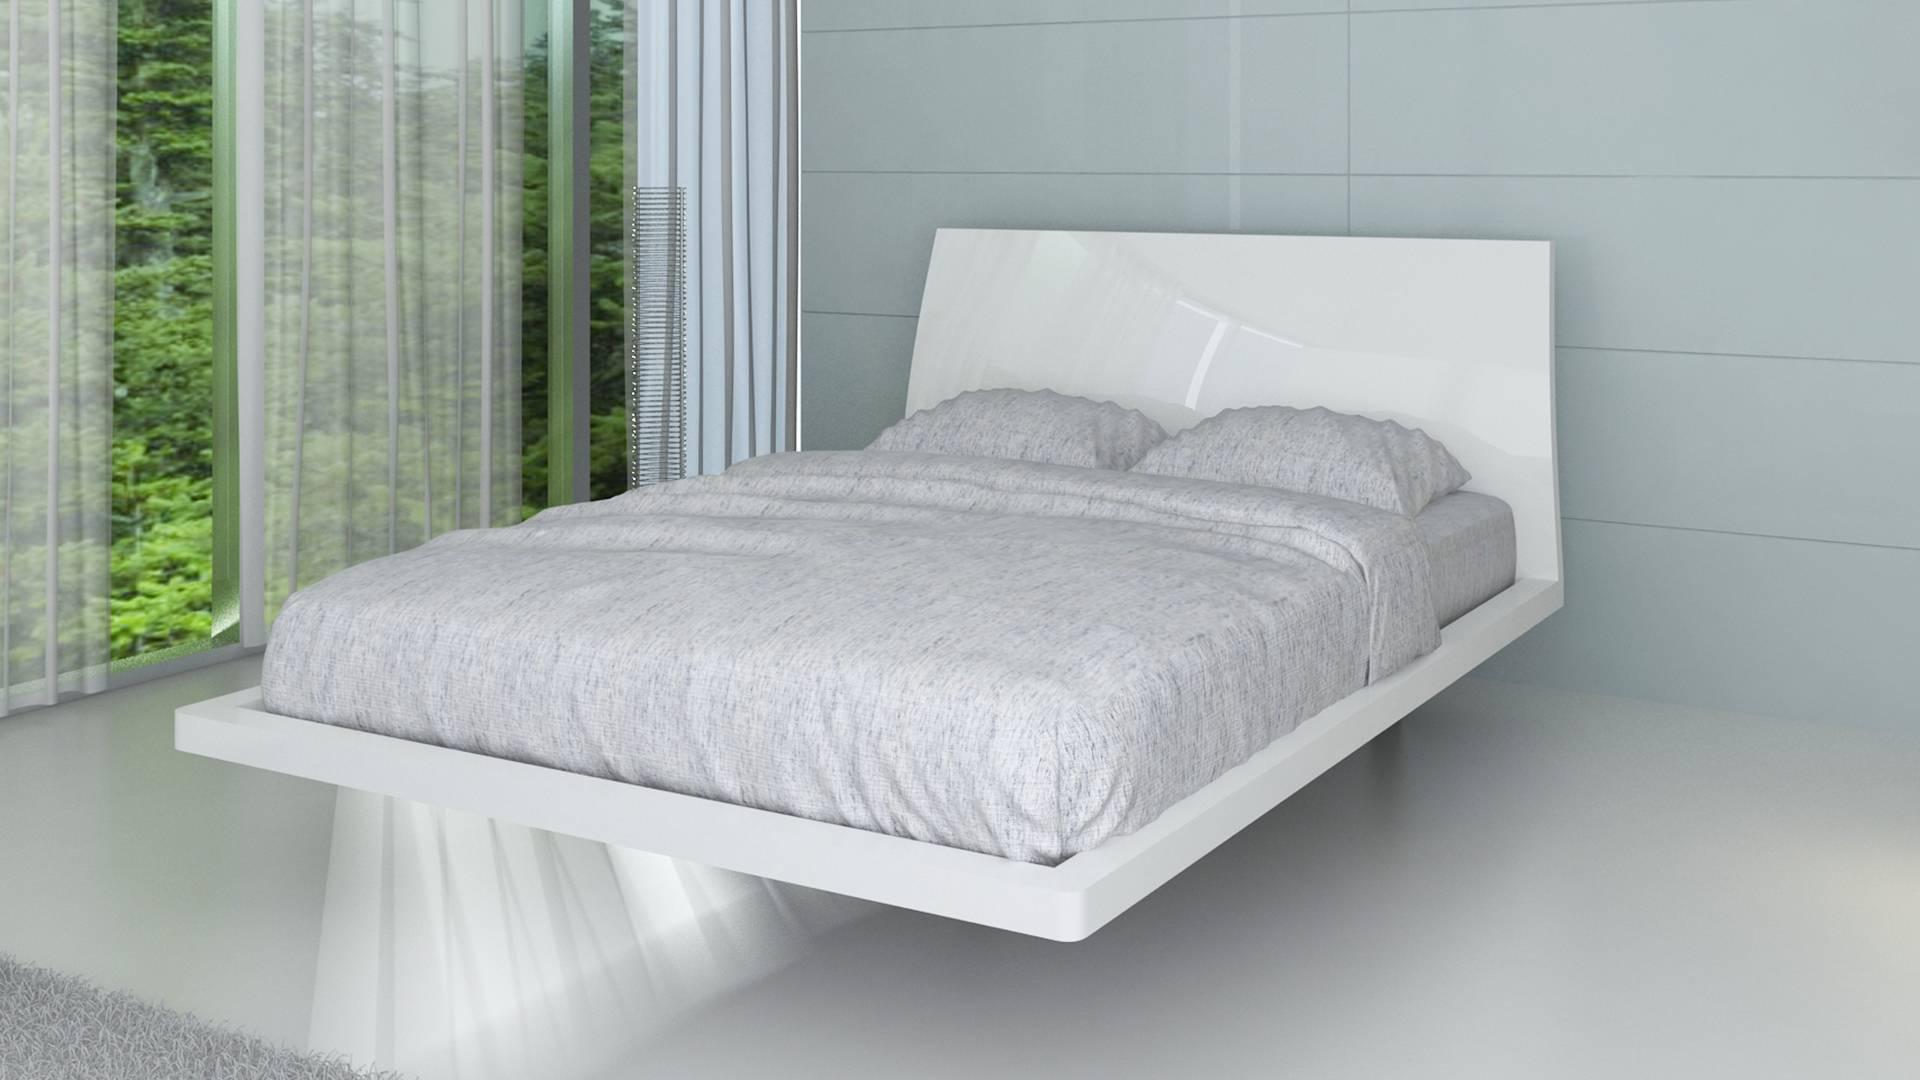 MobilierMoss cama Stoomba con somier